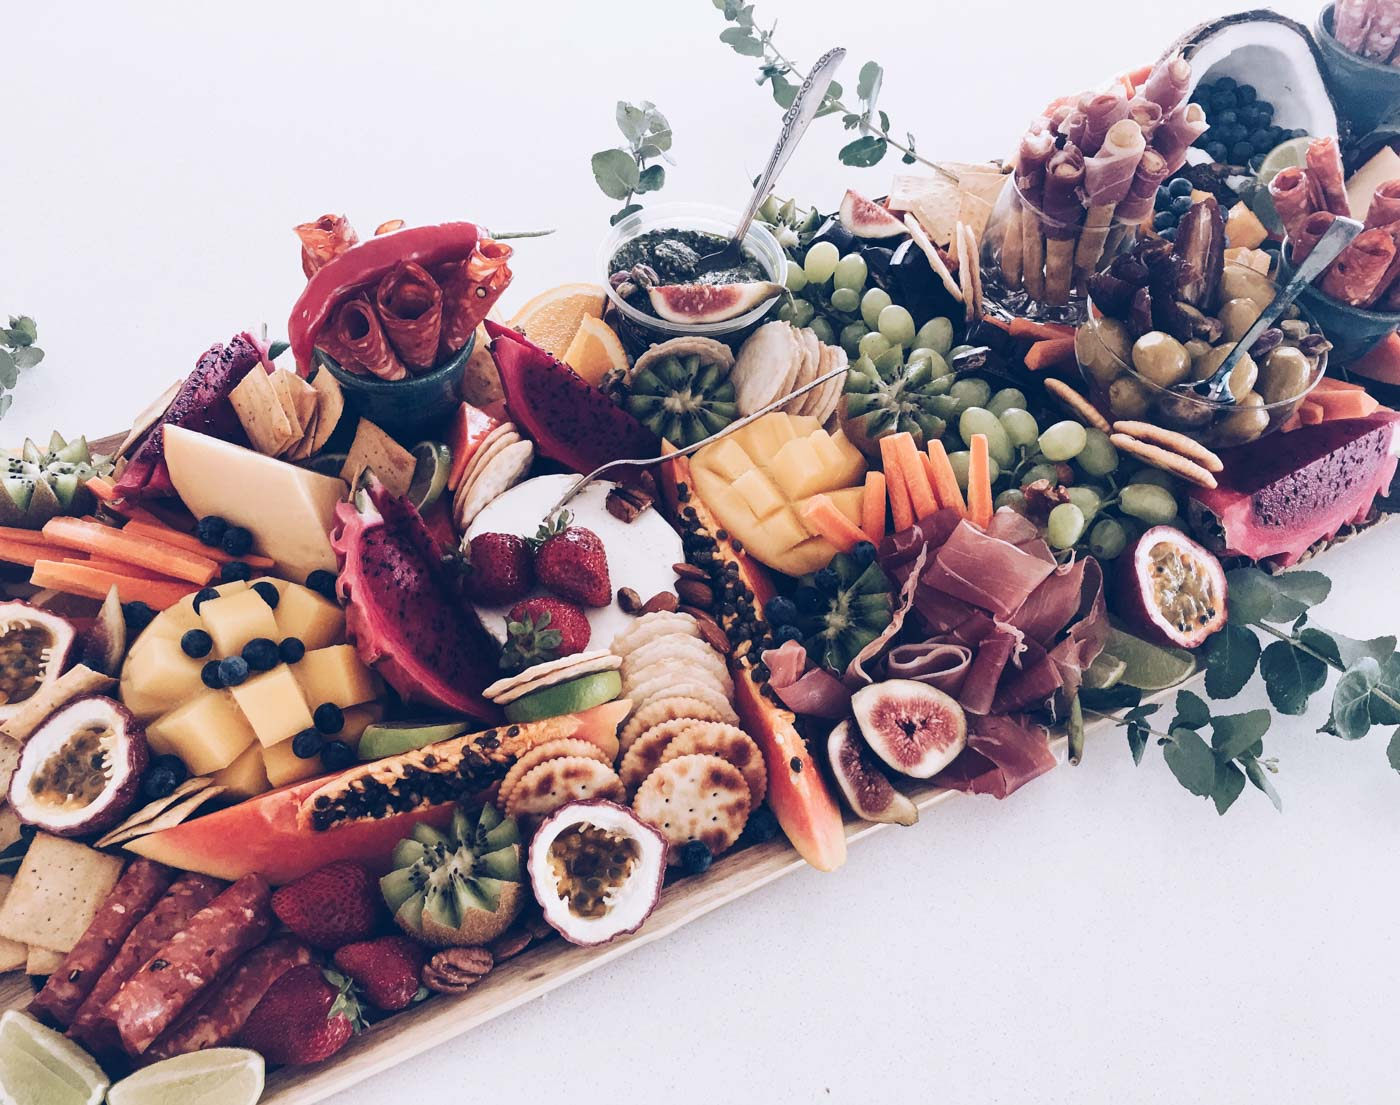 the_Collection_co_grazing_table_cairns_weddings_catering_medium_platter-2-2.jpg